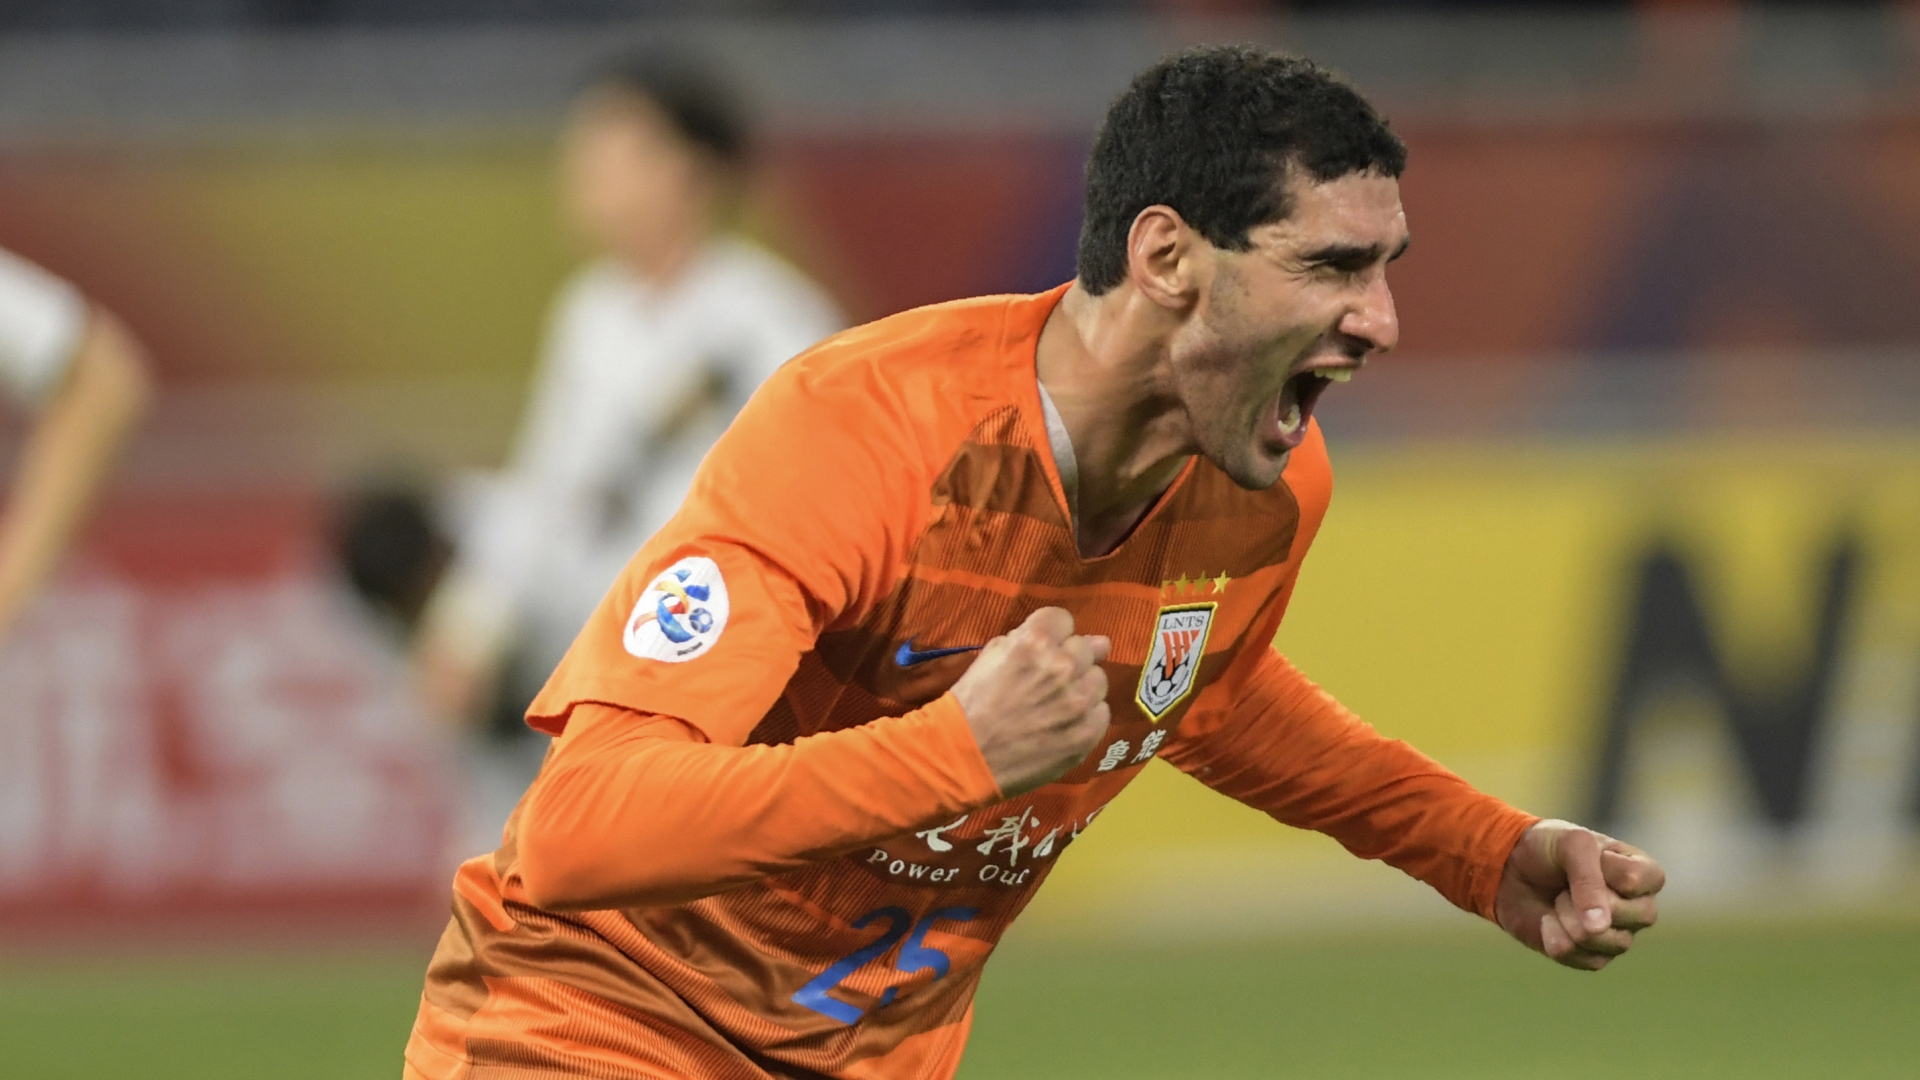 Former Man Utd midfielder Fellaini scores eight-minute hat-trick of headers to lead Shandong to victory